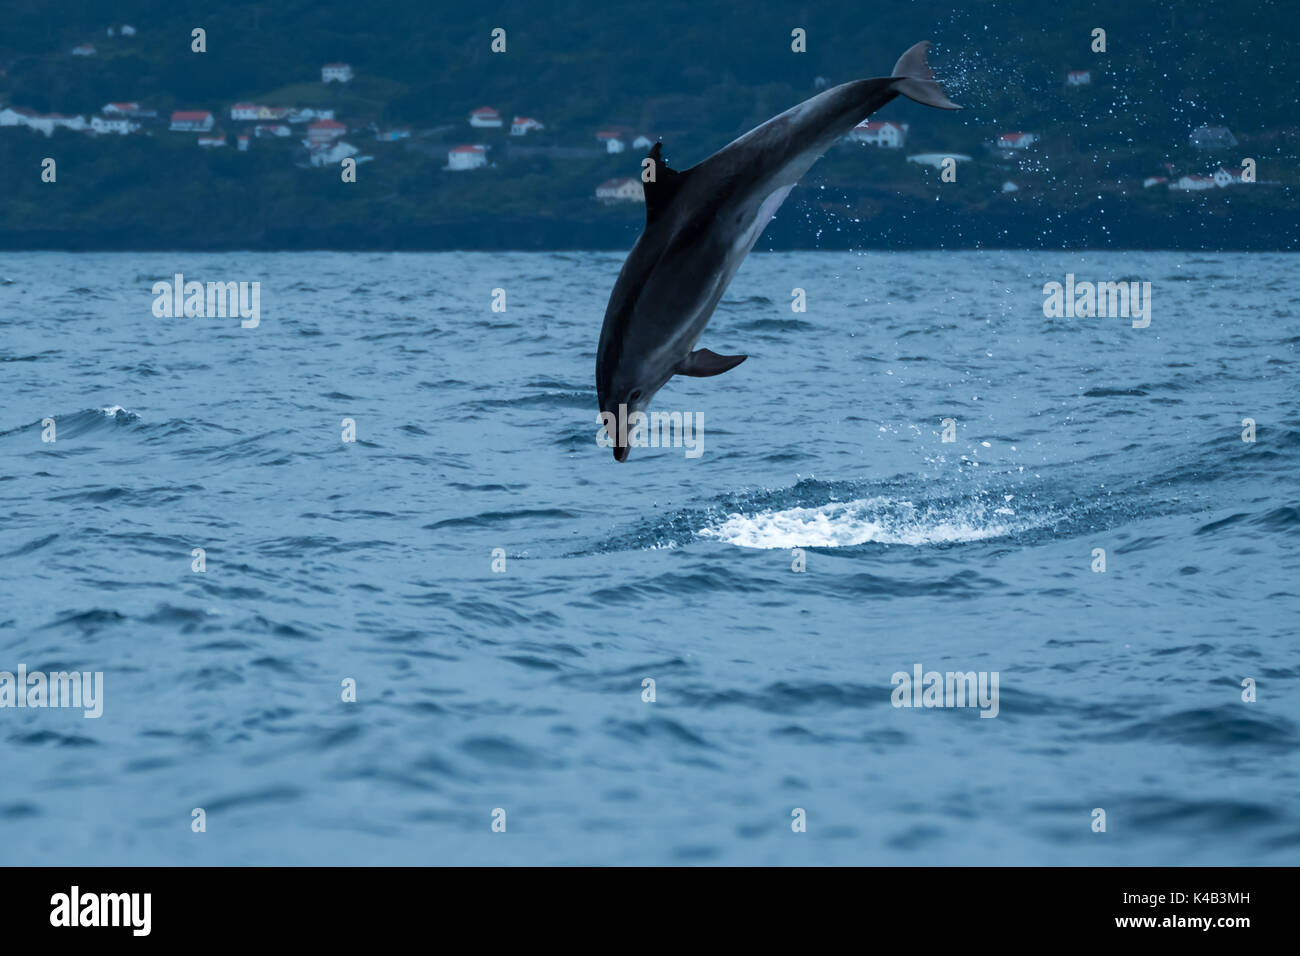 A bottlenose dolphin leaping from the water off Lajes do Pico, premier whale watching destination in the Azores. - Stock Image